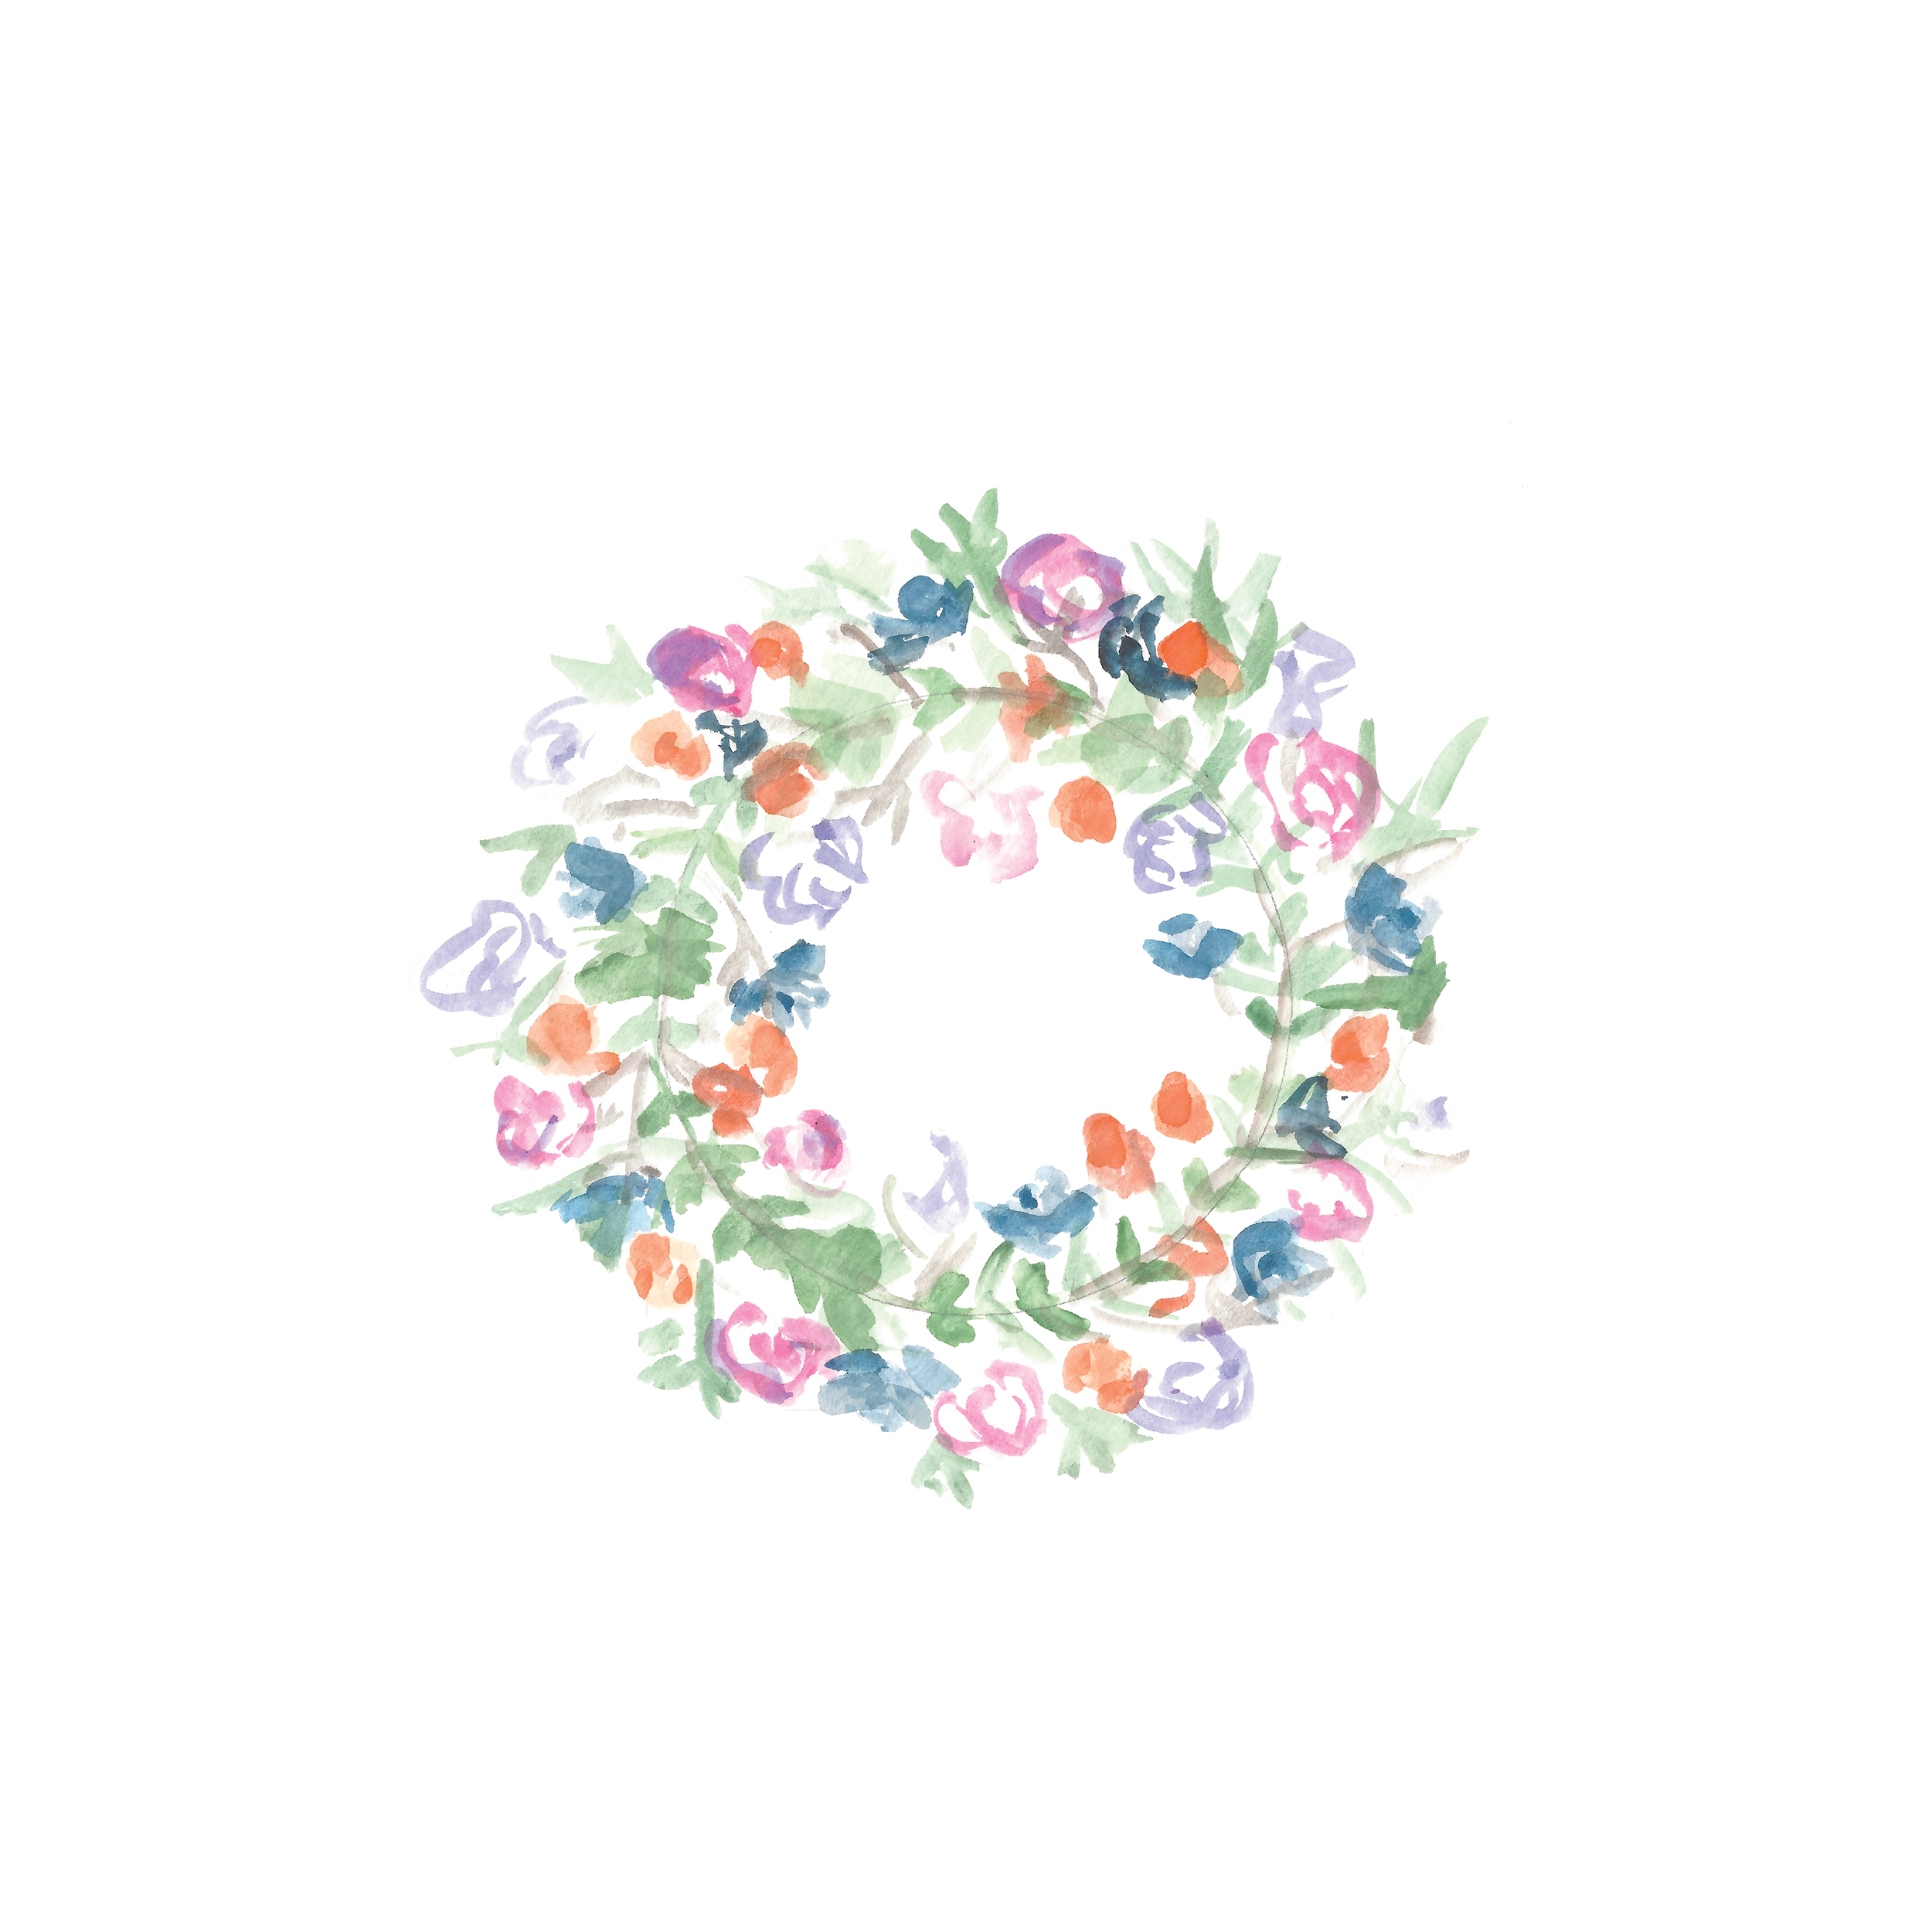 Fall Wreath Image-02.png